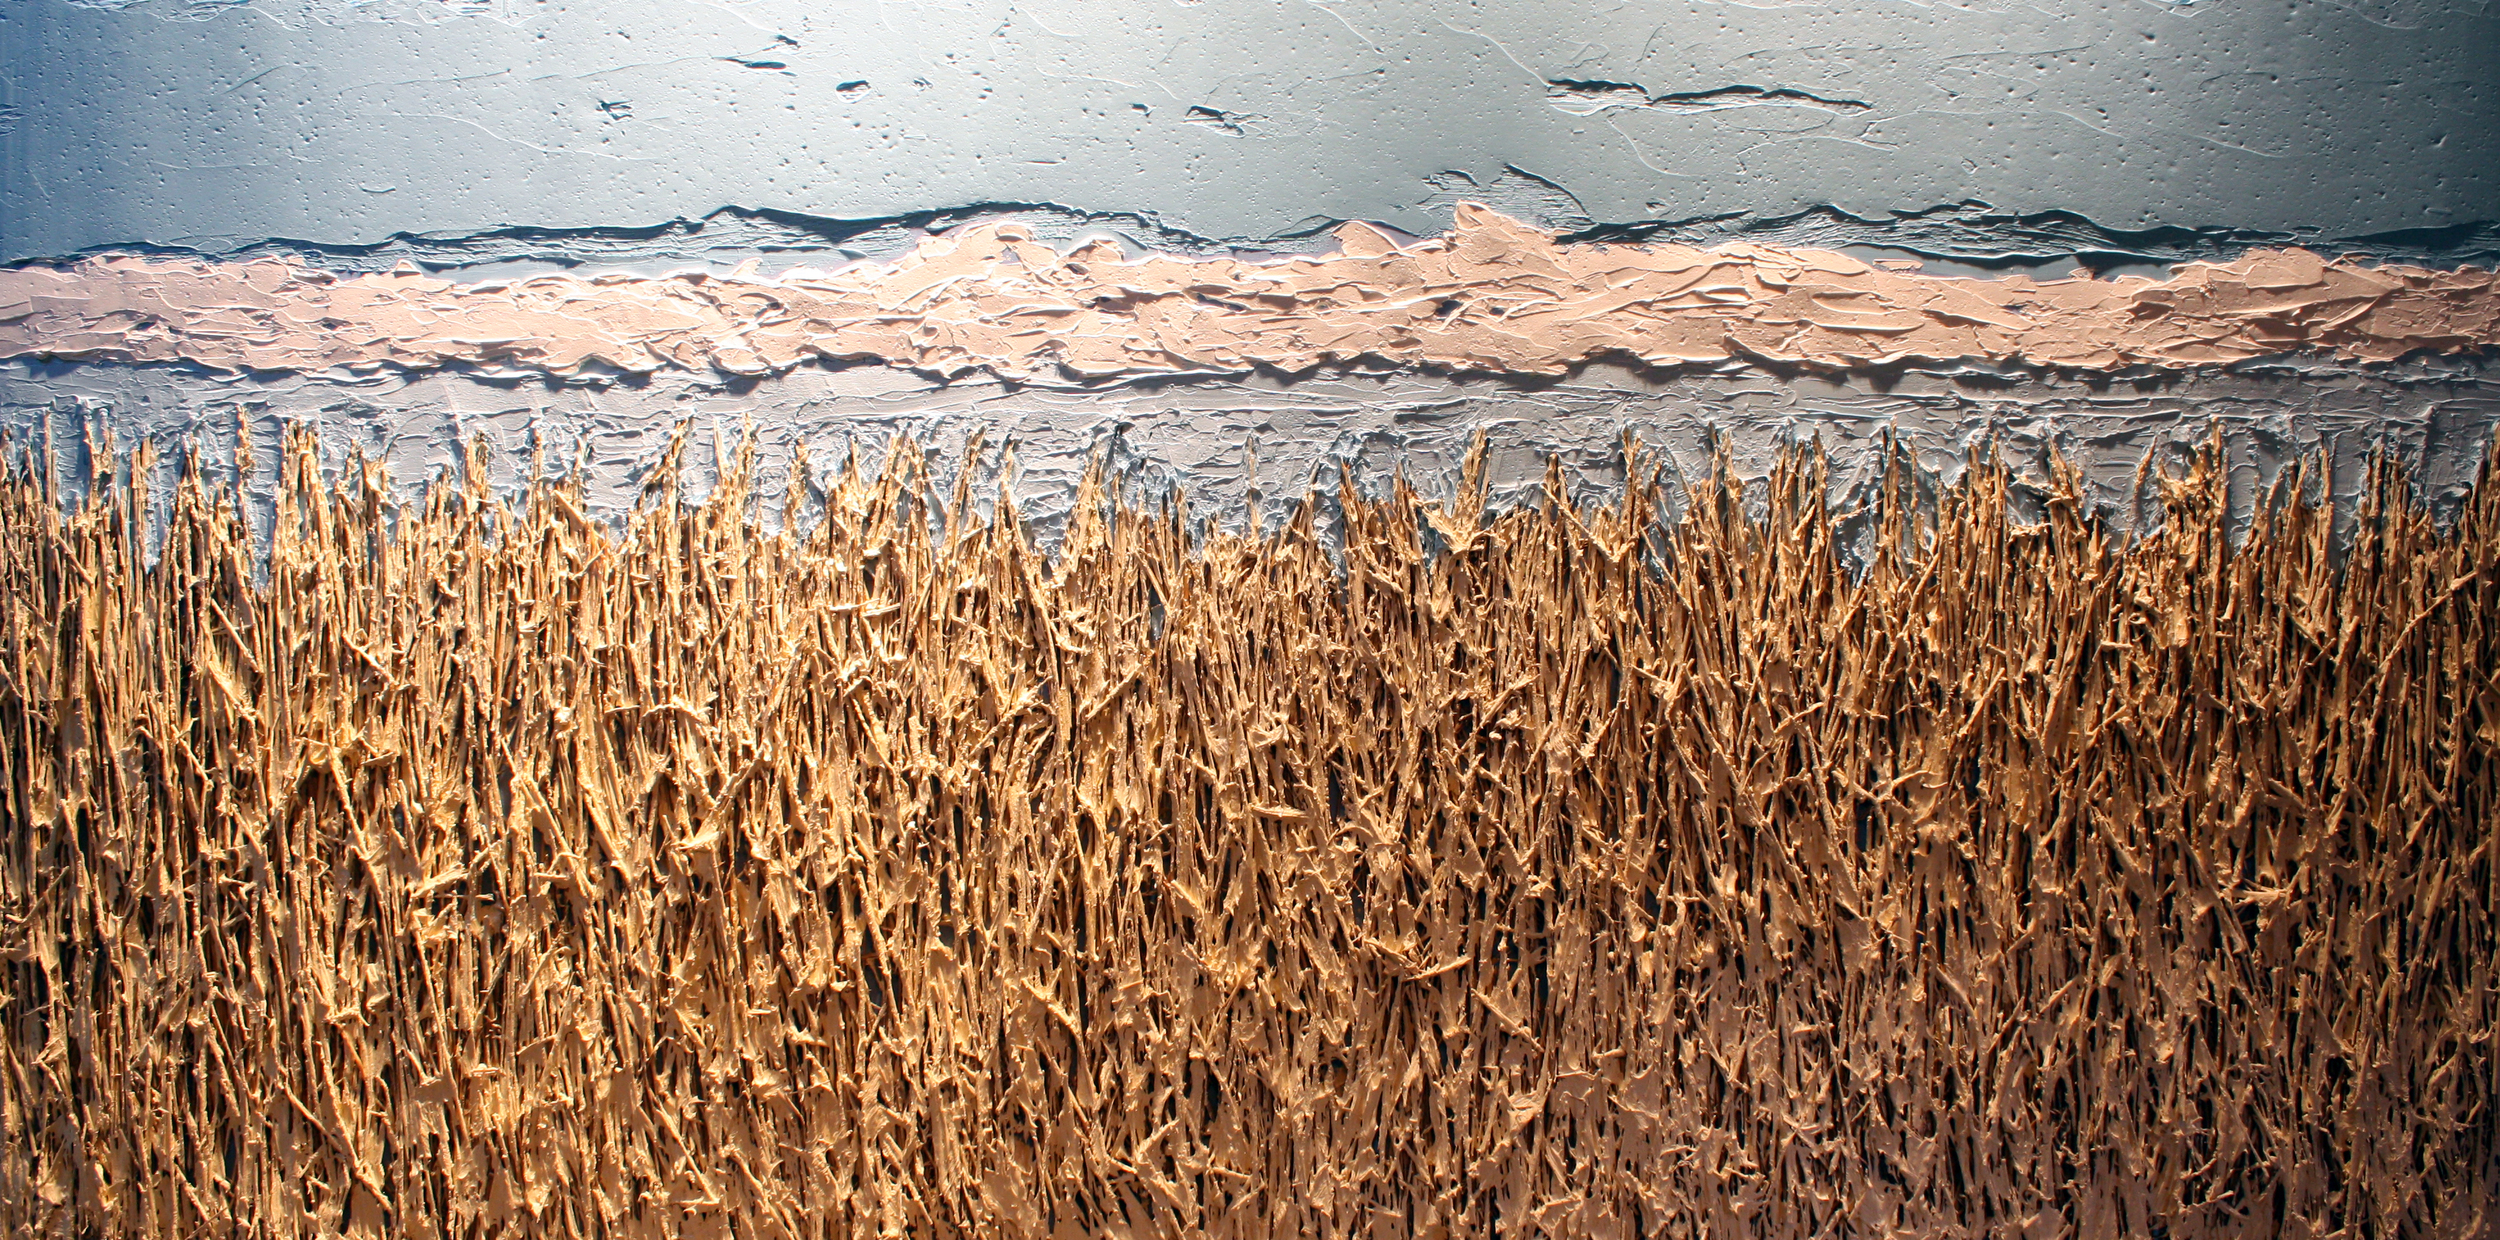 Untitled No.3  |  Field and Fences Collection  |  8 x 4 feet  | Mixed media on wood panel